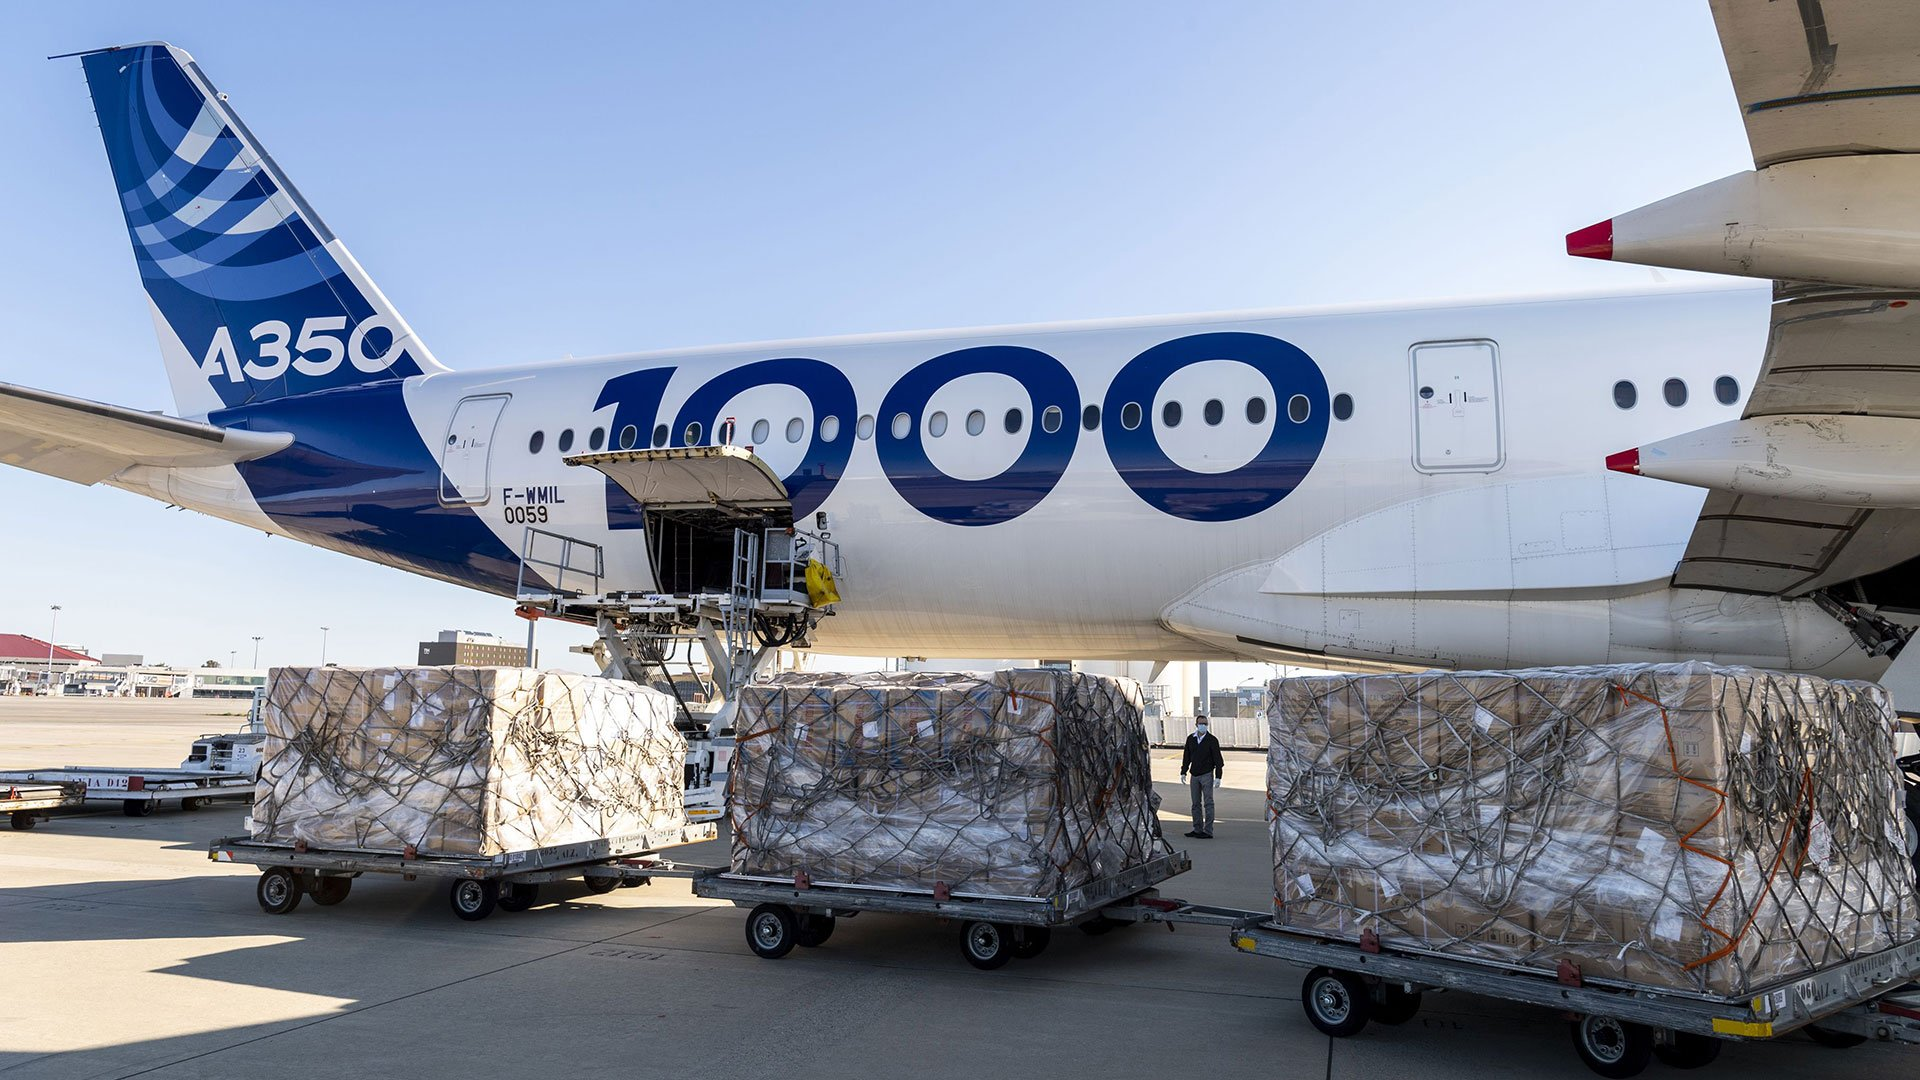 New aircraft could tip the balance of cargo market